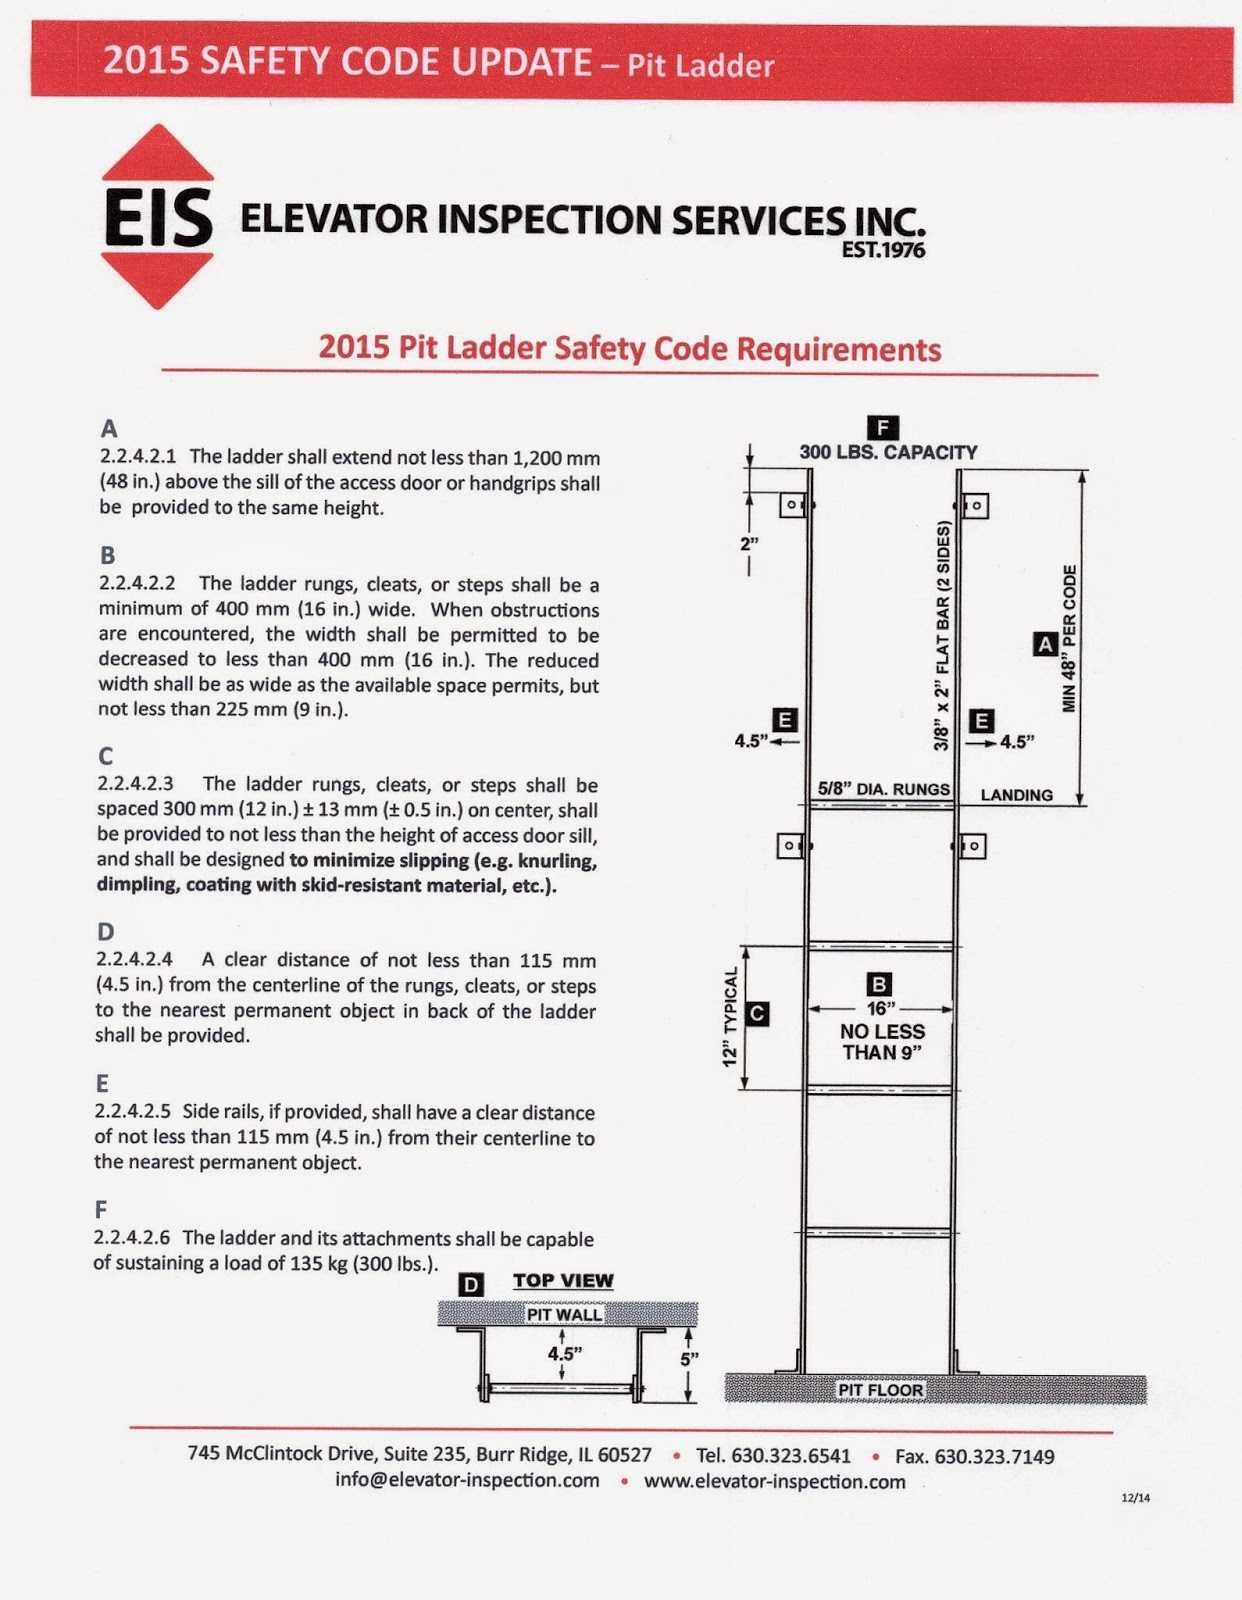 non addressable fire alarm system wiring diagram 240v photocell uk for elevator recall schematic